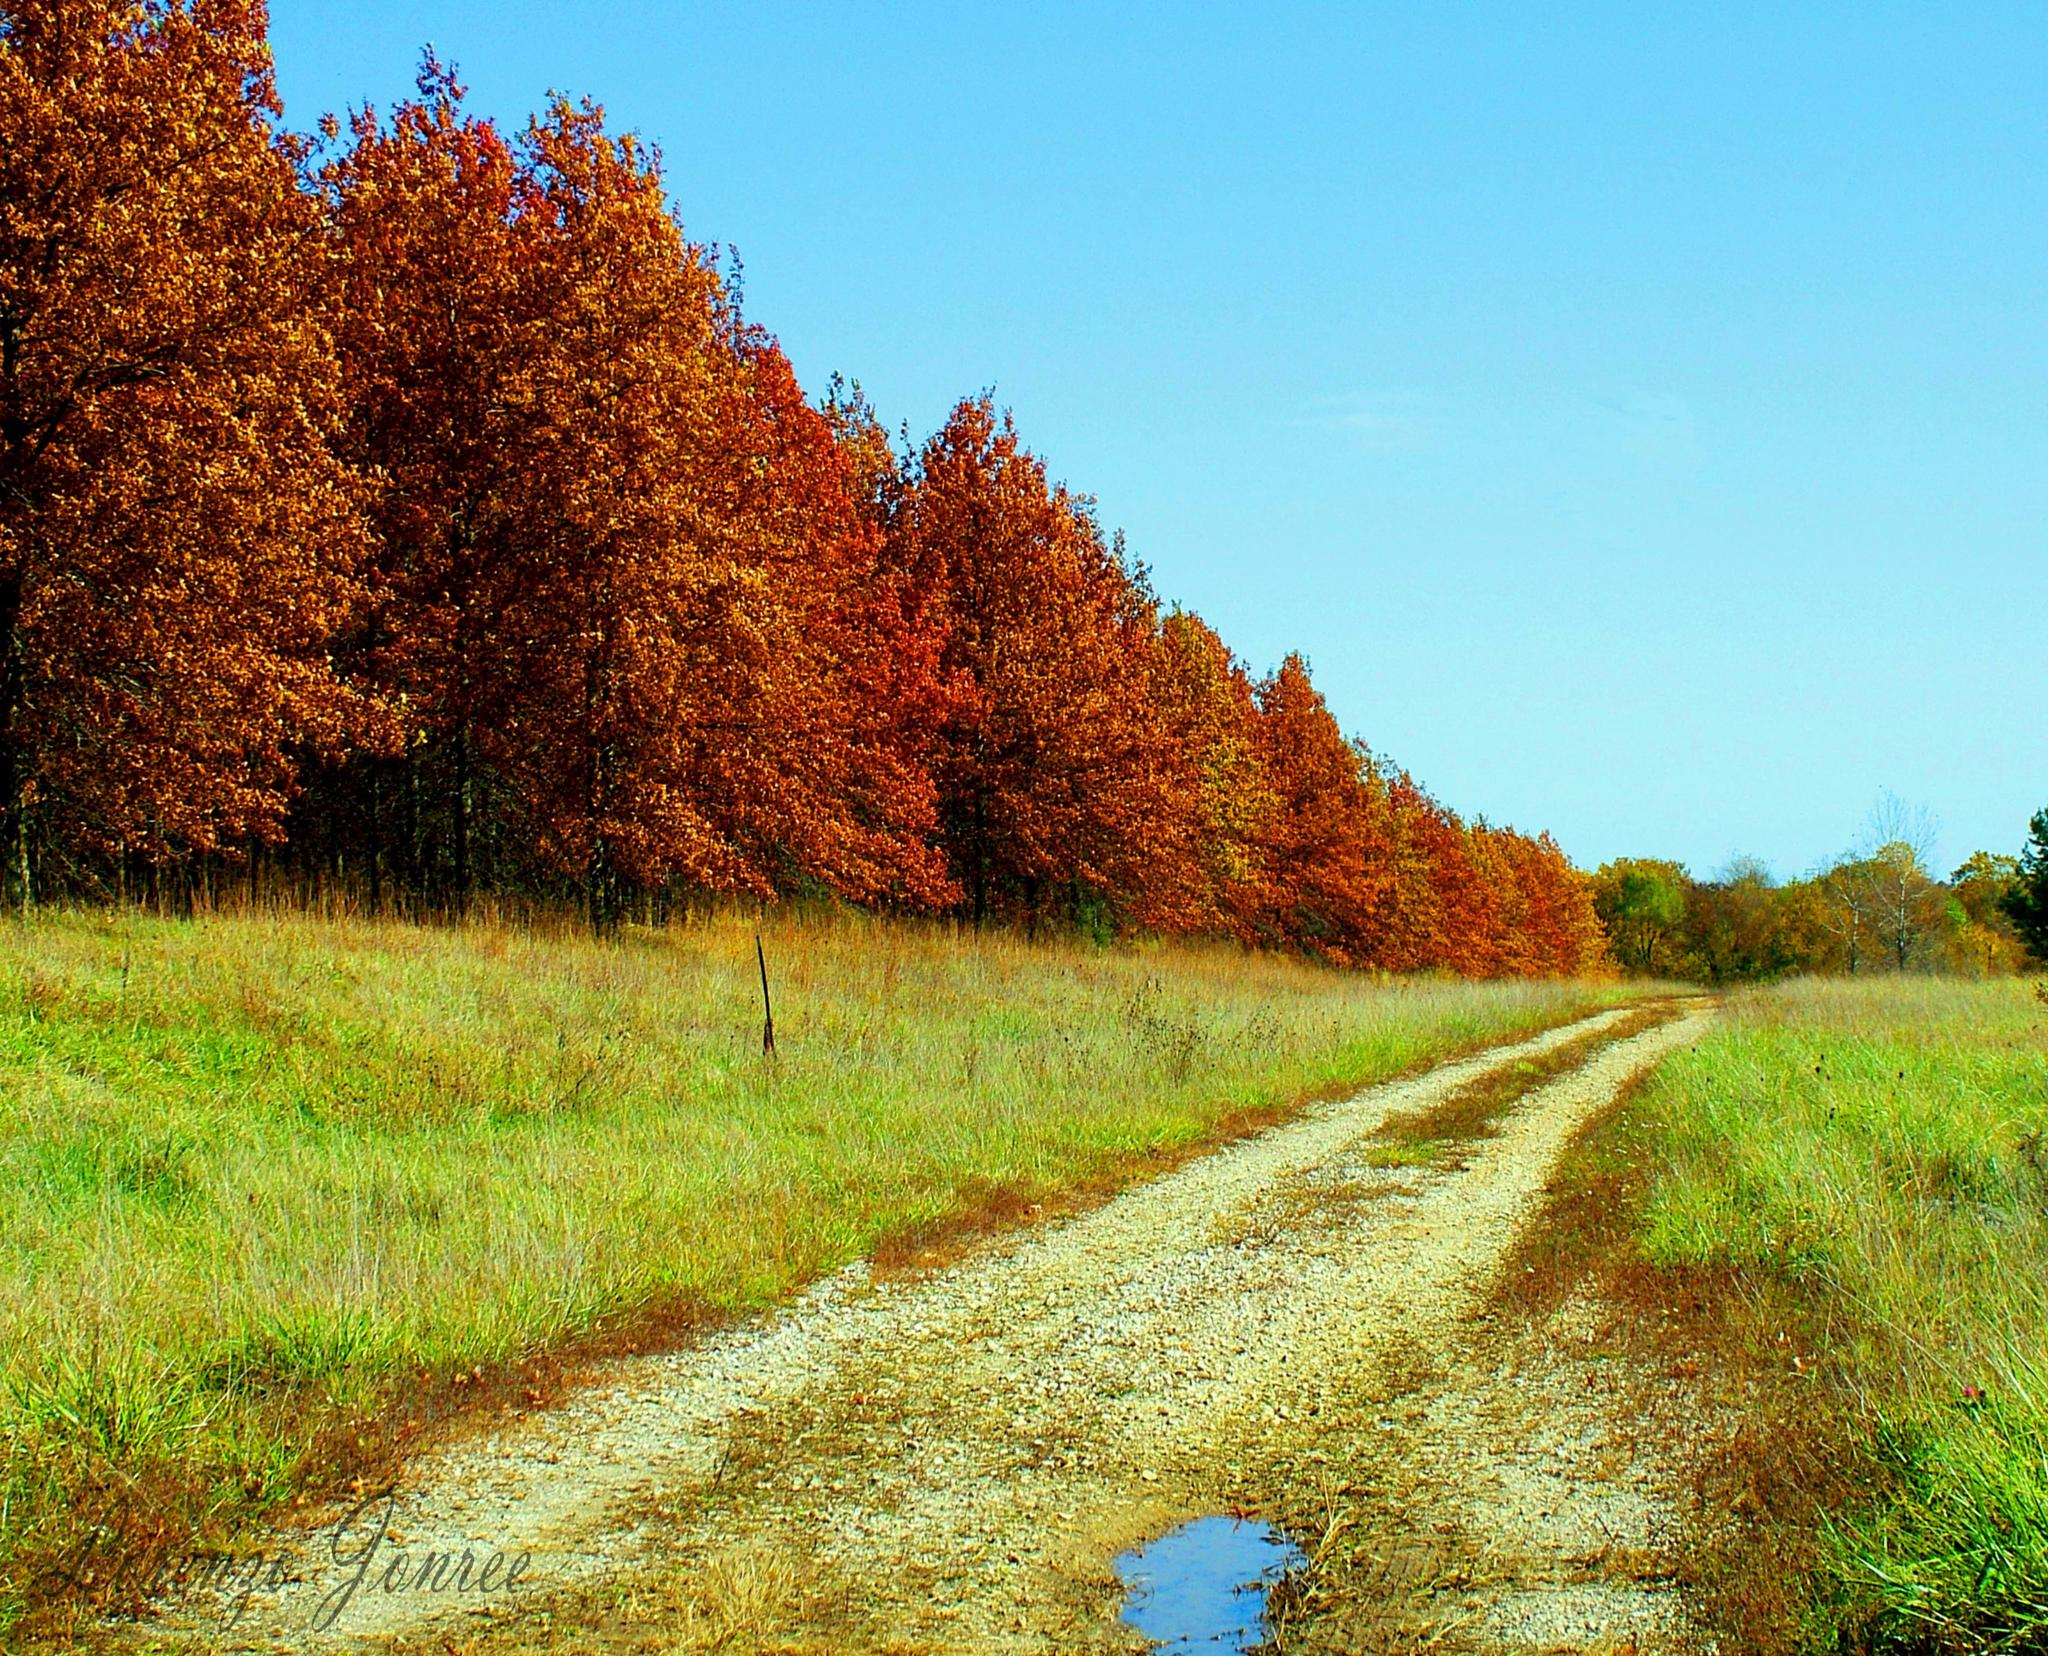 Missouri Autumn Country Drive  by Lorenzo (Larry) Jonree